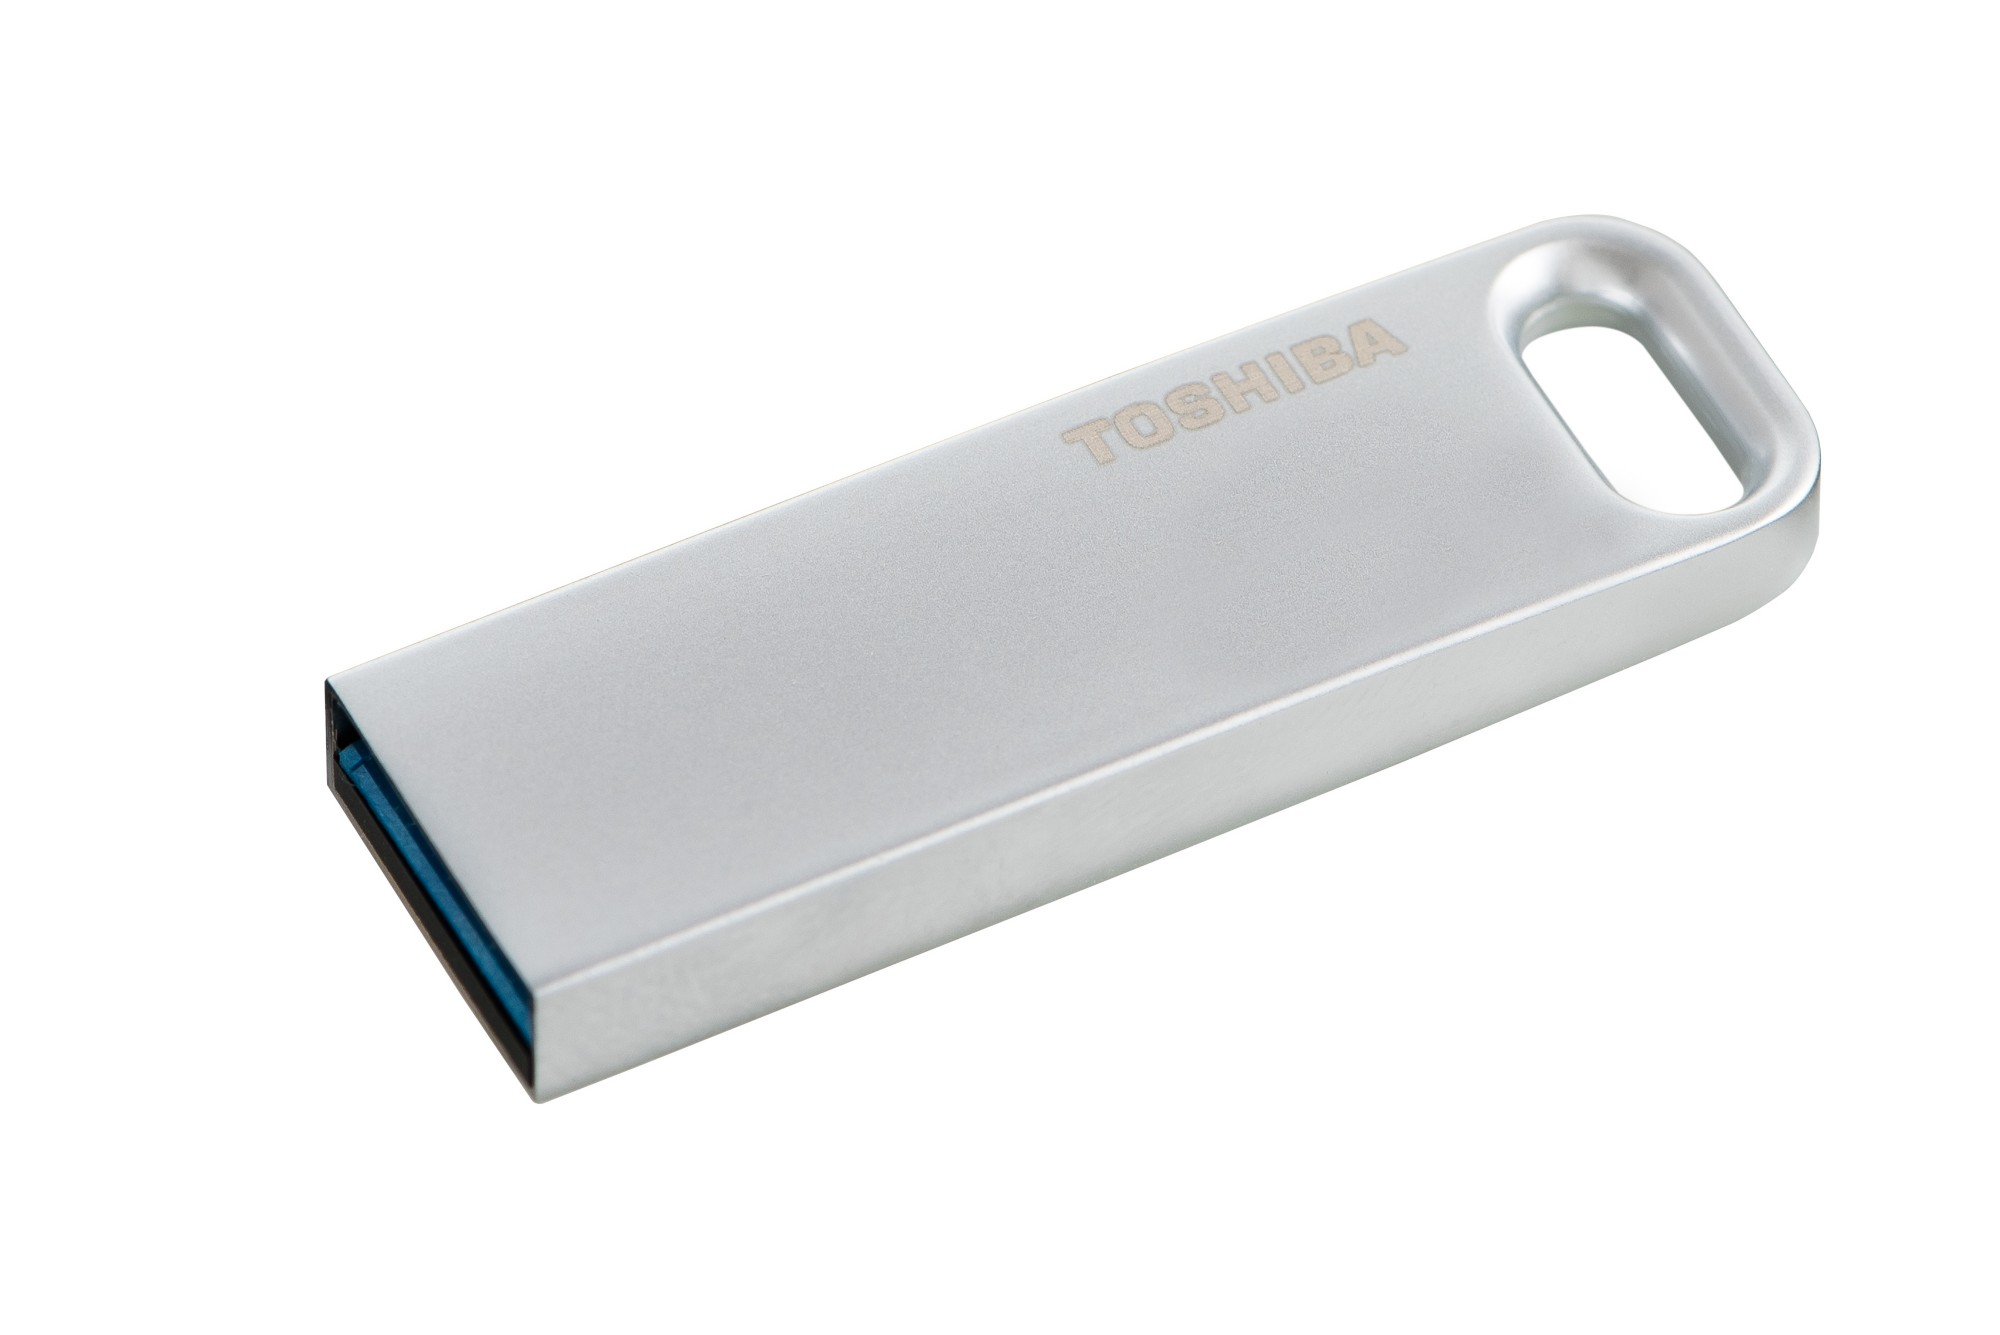 TOSHIBA U363, 64GB, USB 3.0 64GB (3.1 GEN 1) TYPE-A CONNECTOR SILVER FLASH DRIVE